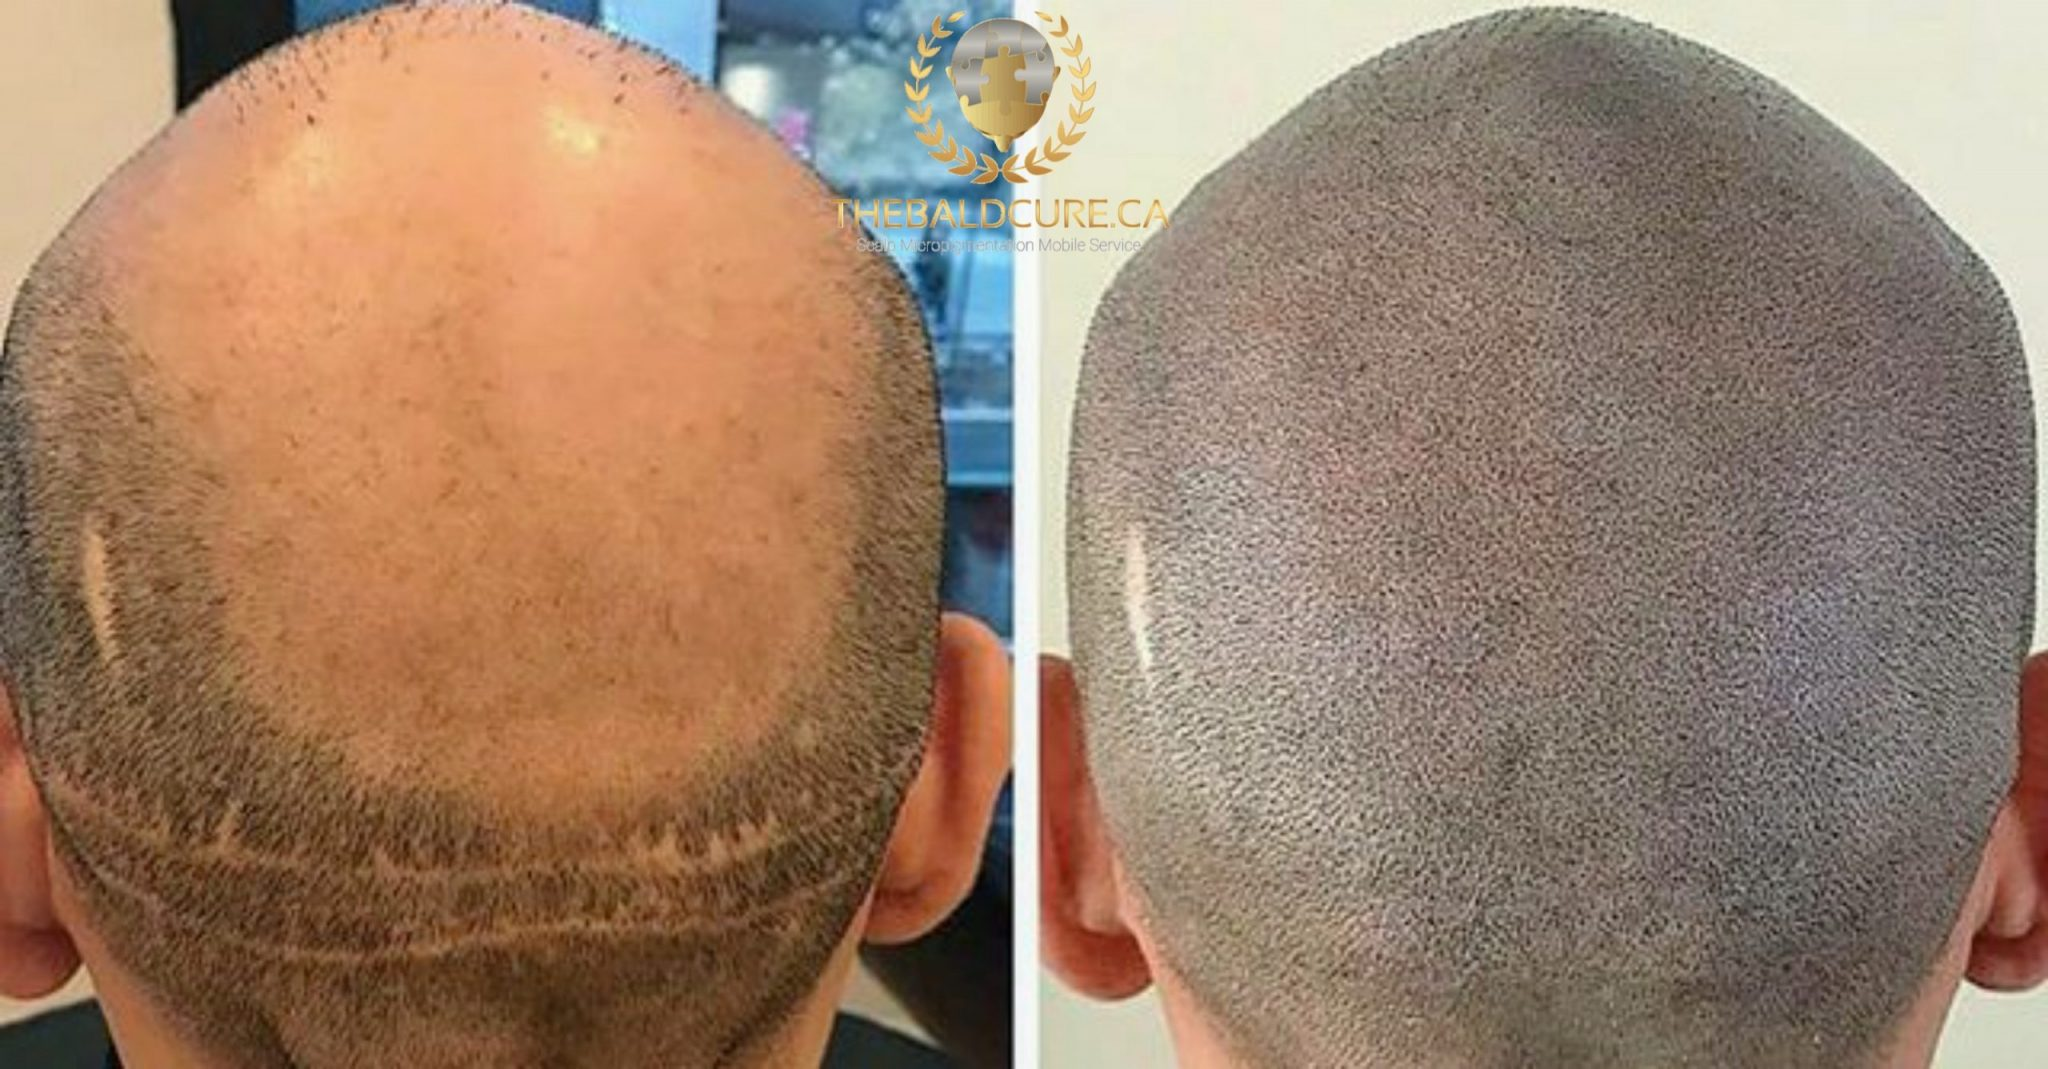 The Bald Cure Mobile Service In The Comfort Of Your Home We Beat Any Price PicsArt_03-20-10.26.59-scaled